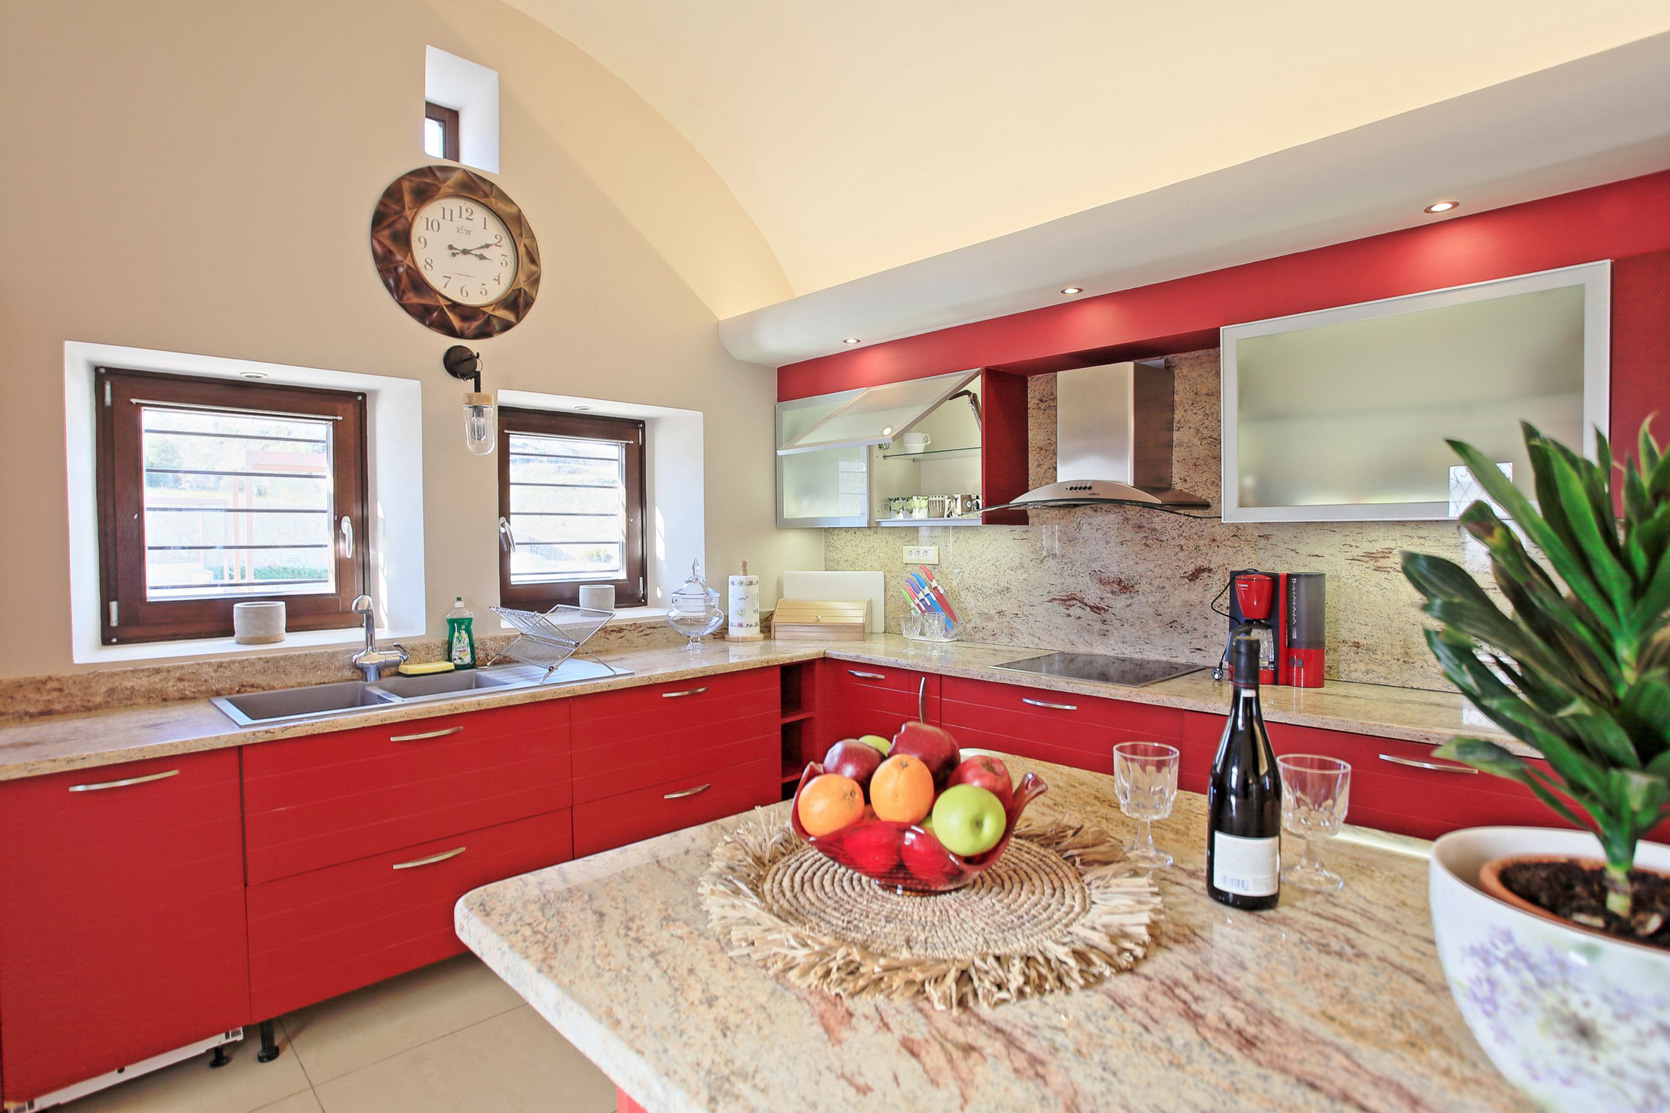 Irenes_Mansion_kitchen3.jpg